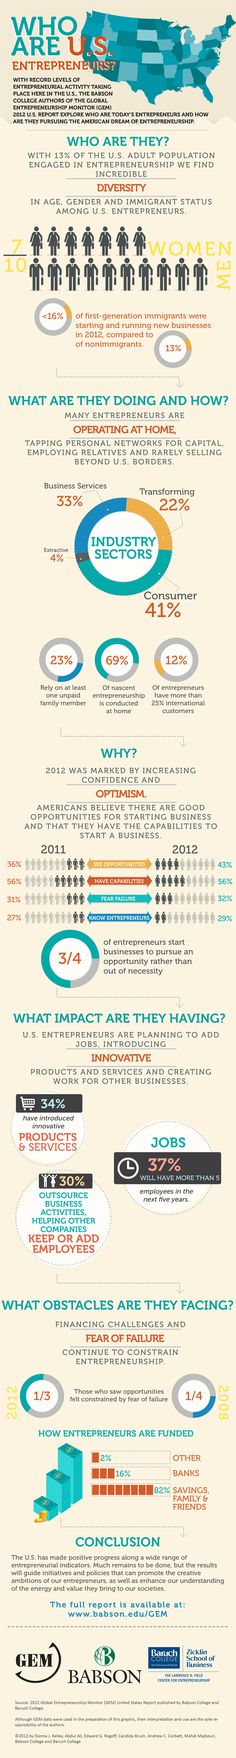 U.S. Entrepreneurship Climbs to Highest Level in More Than a Decade (Infographic)